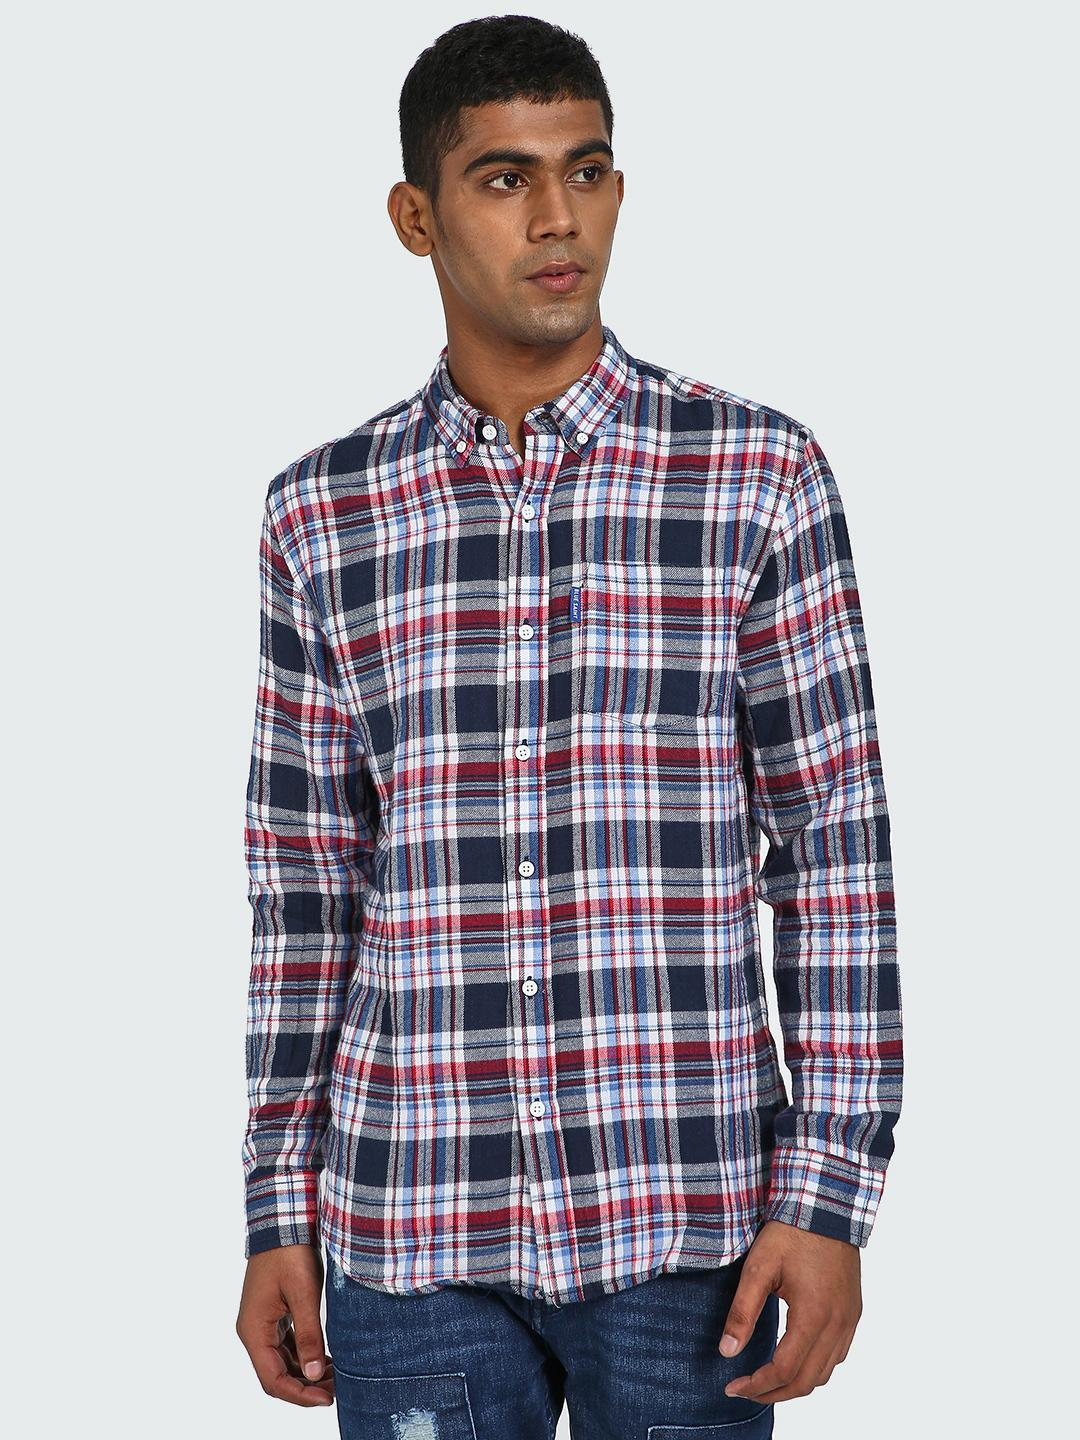 Blue Saint Multi Plaid Check Print Long Sleeve Shirt 1